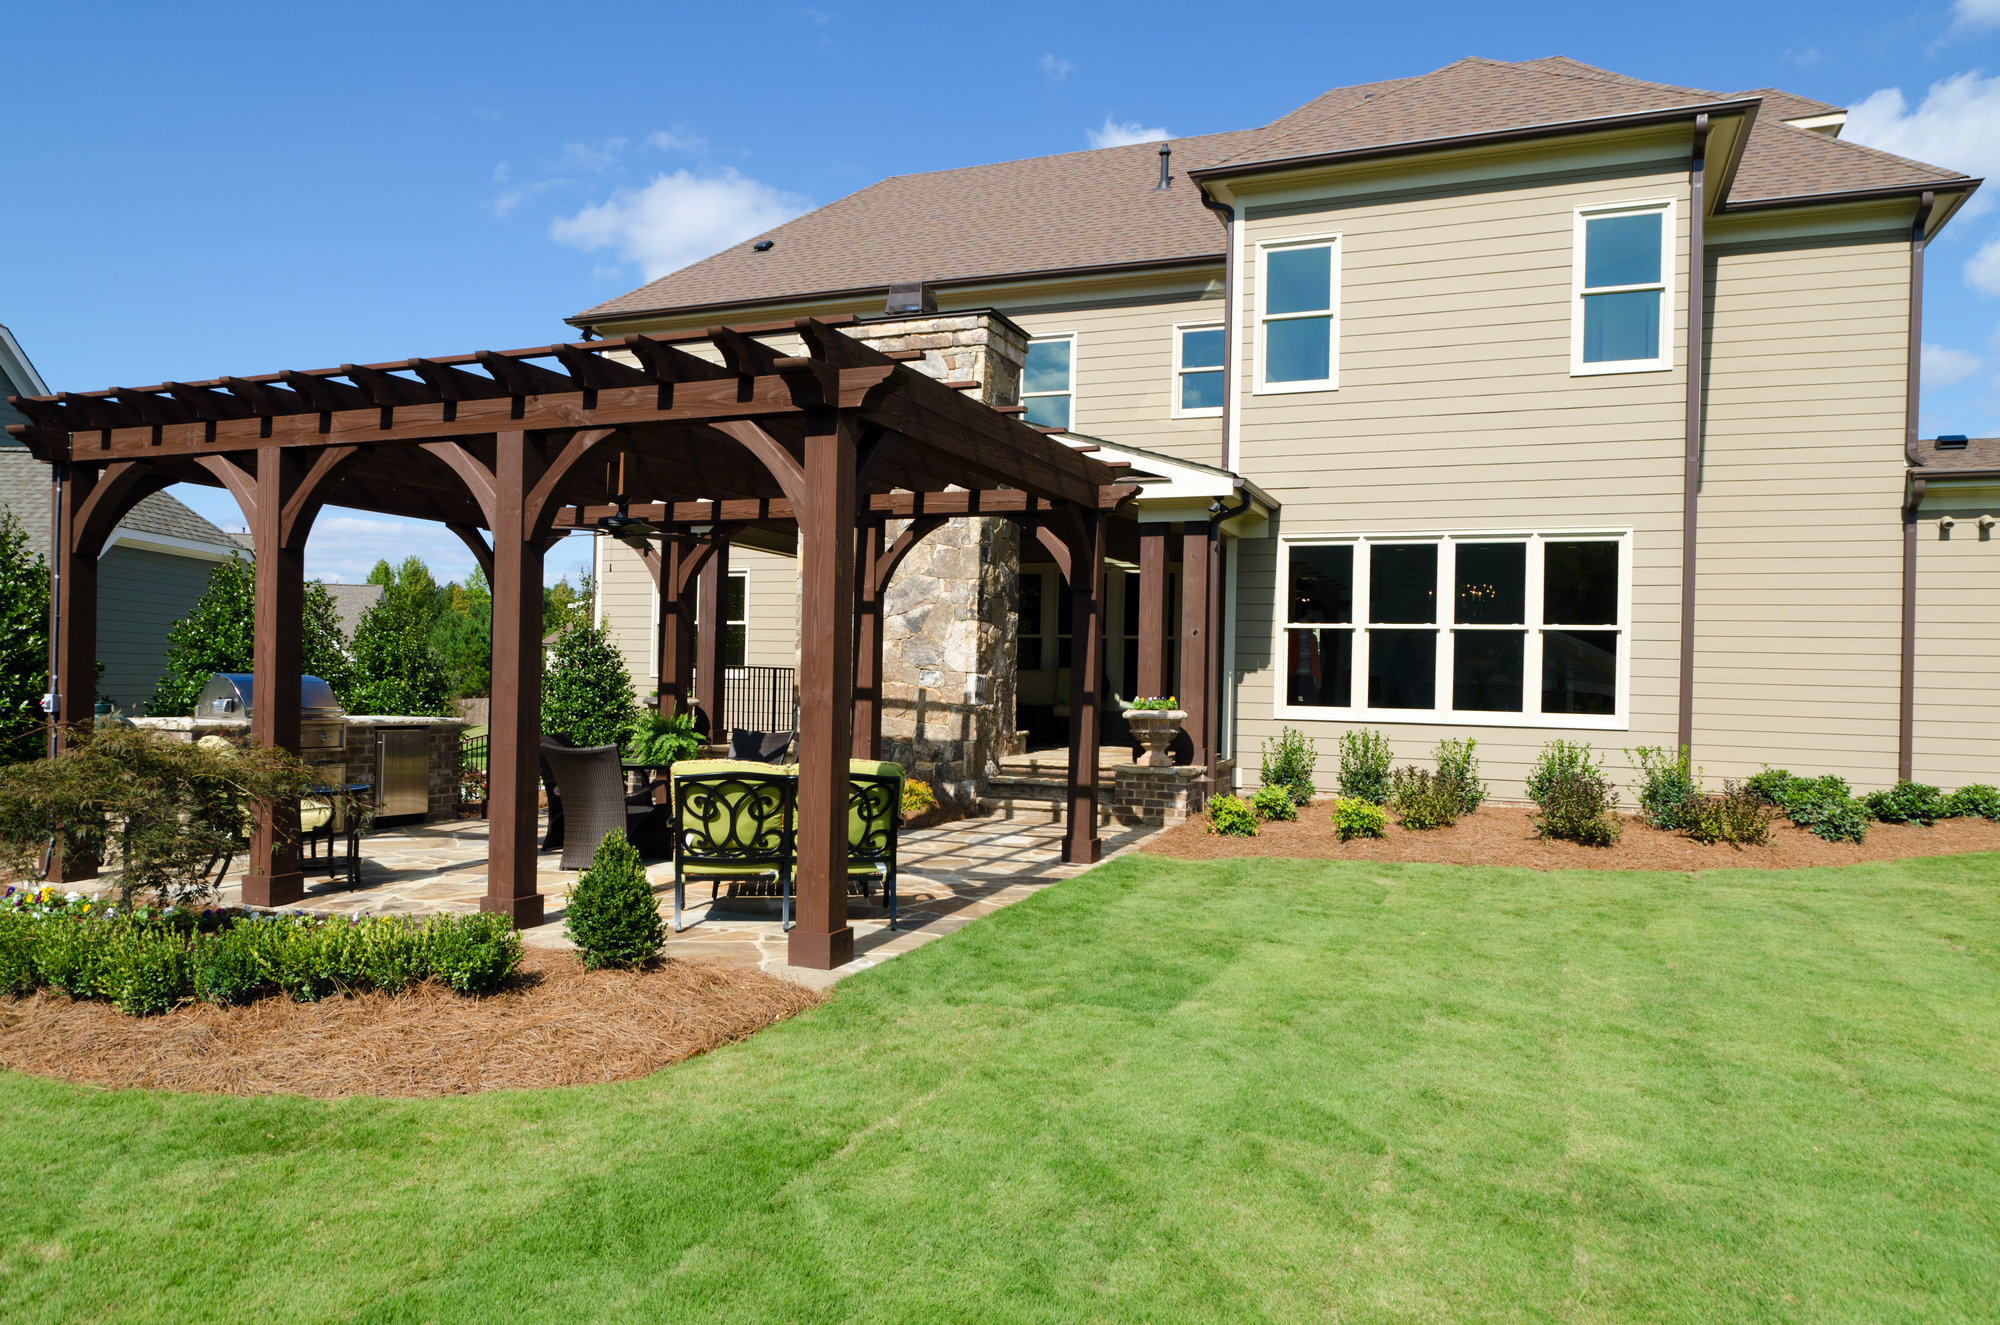 pergola for shade to work